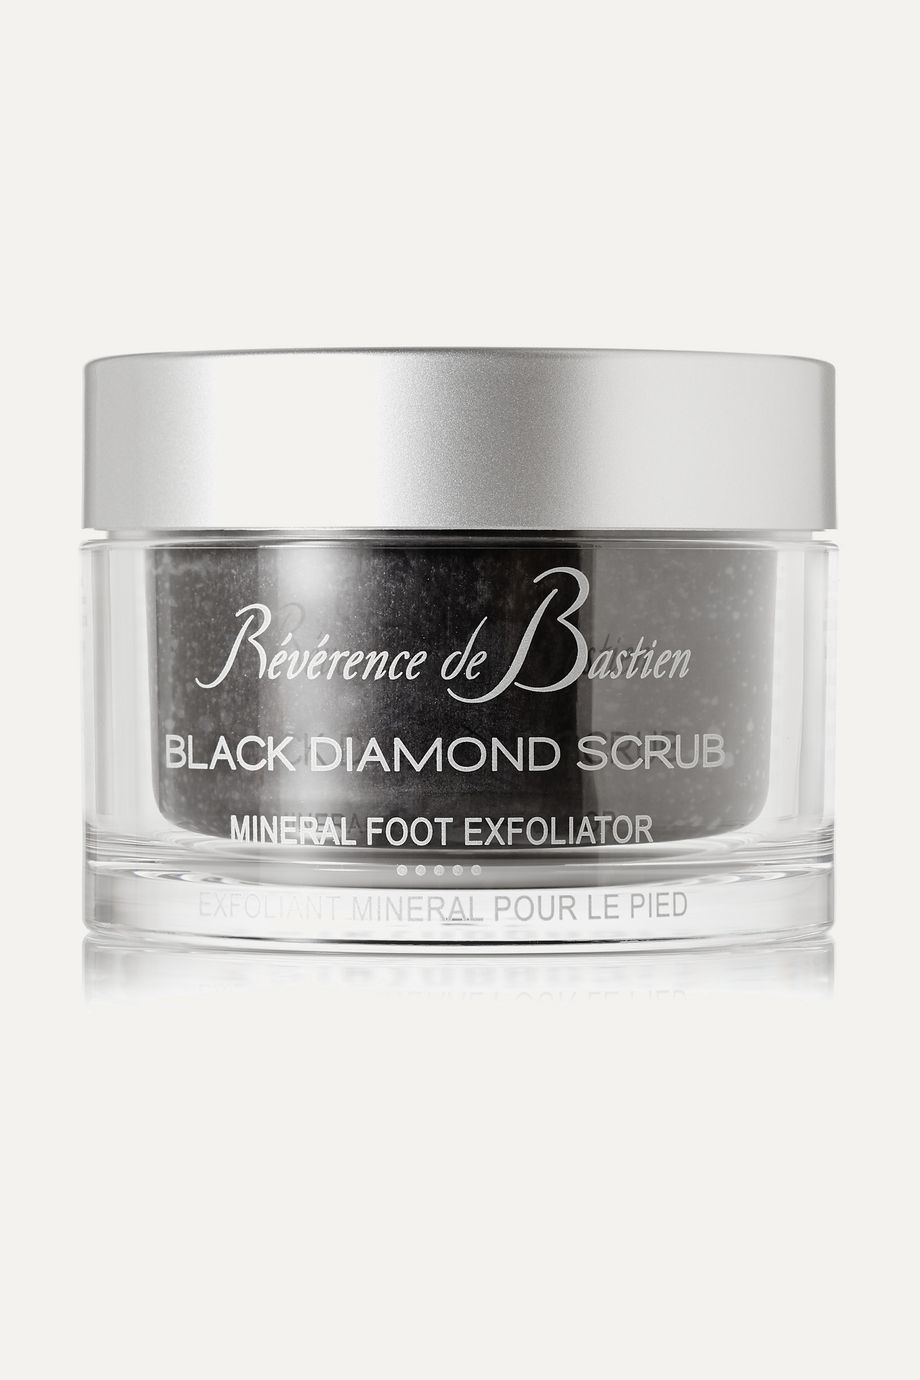 REVERENCE DE BASTIEN Black Diamond Scrub Foot Exfoliant, 200ml